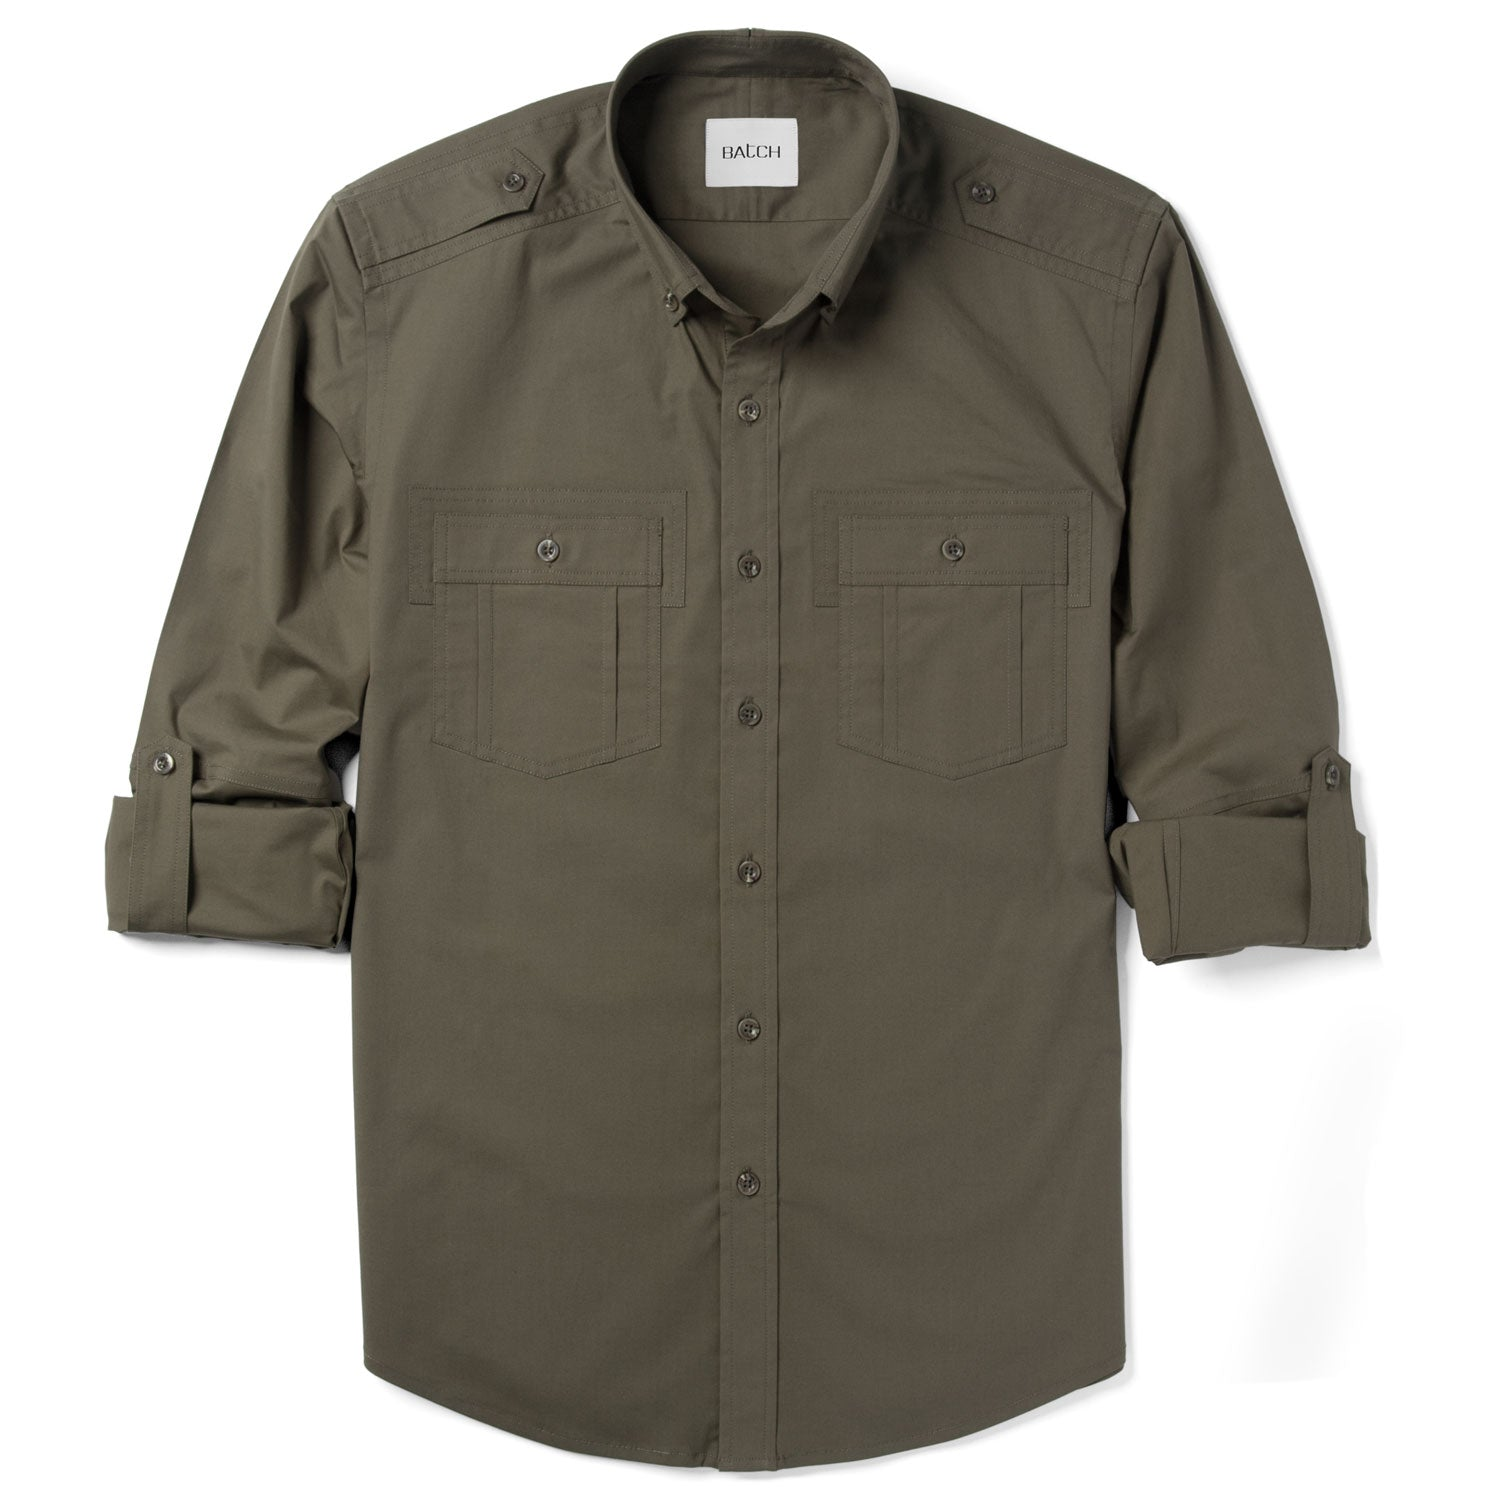 Finisher Utility Shirt – Fatigue Green Stretch Cotton Poplin